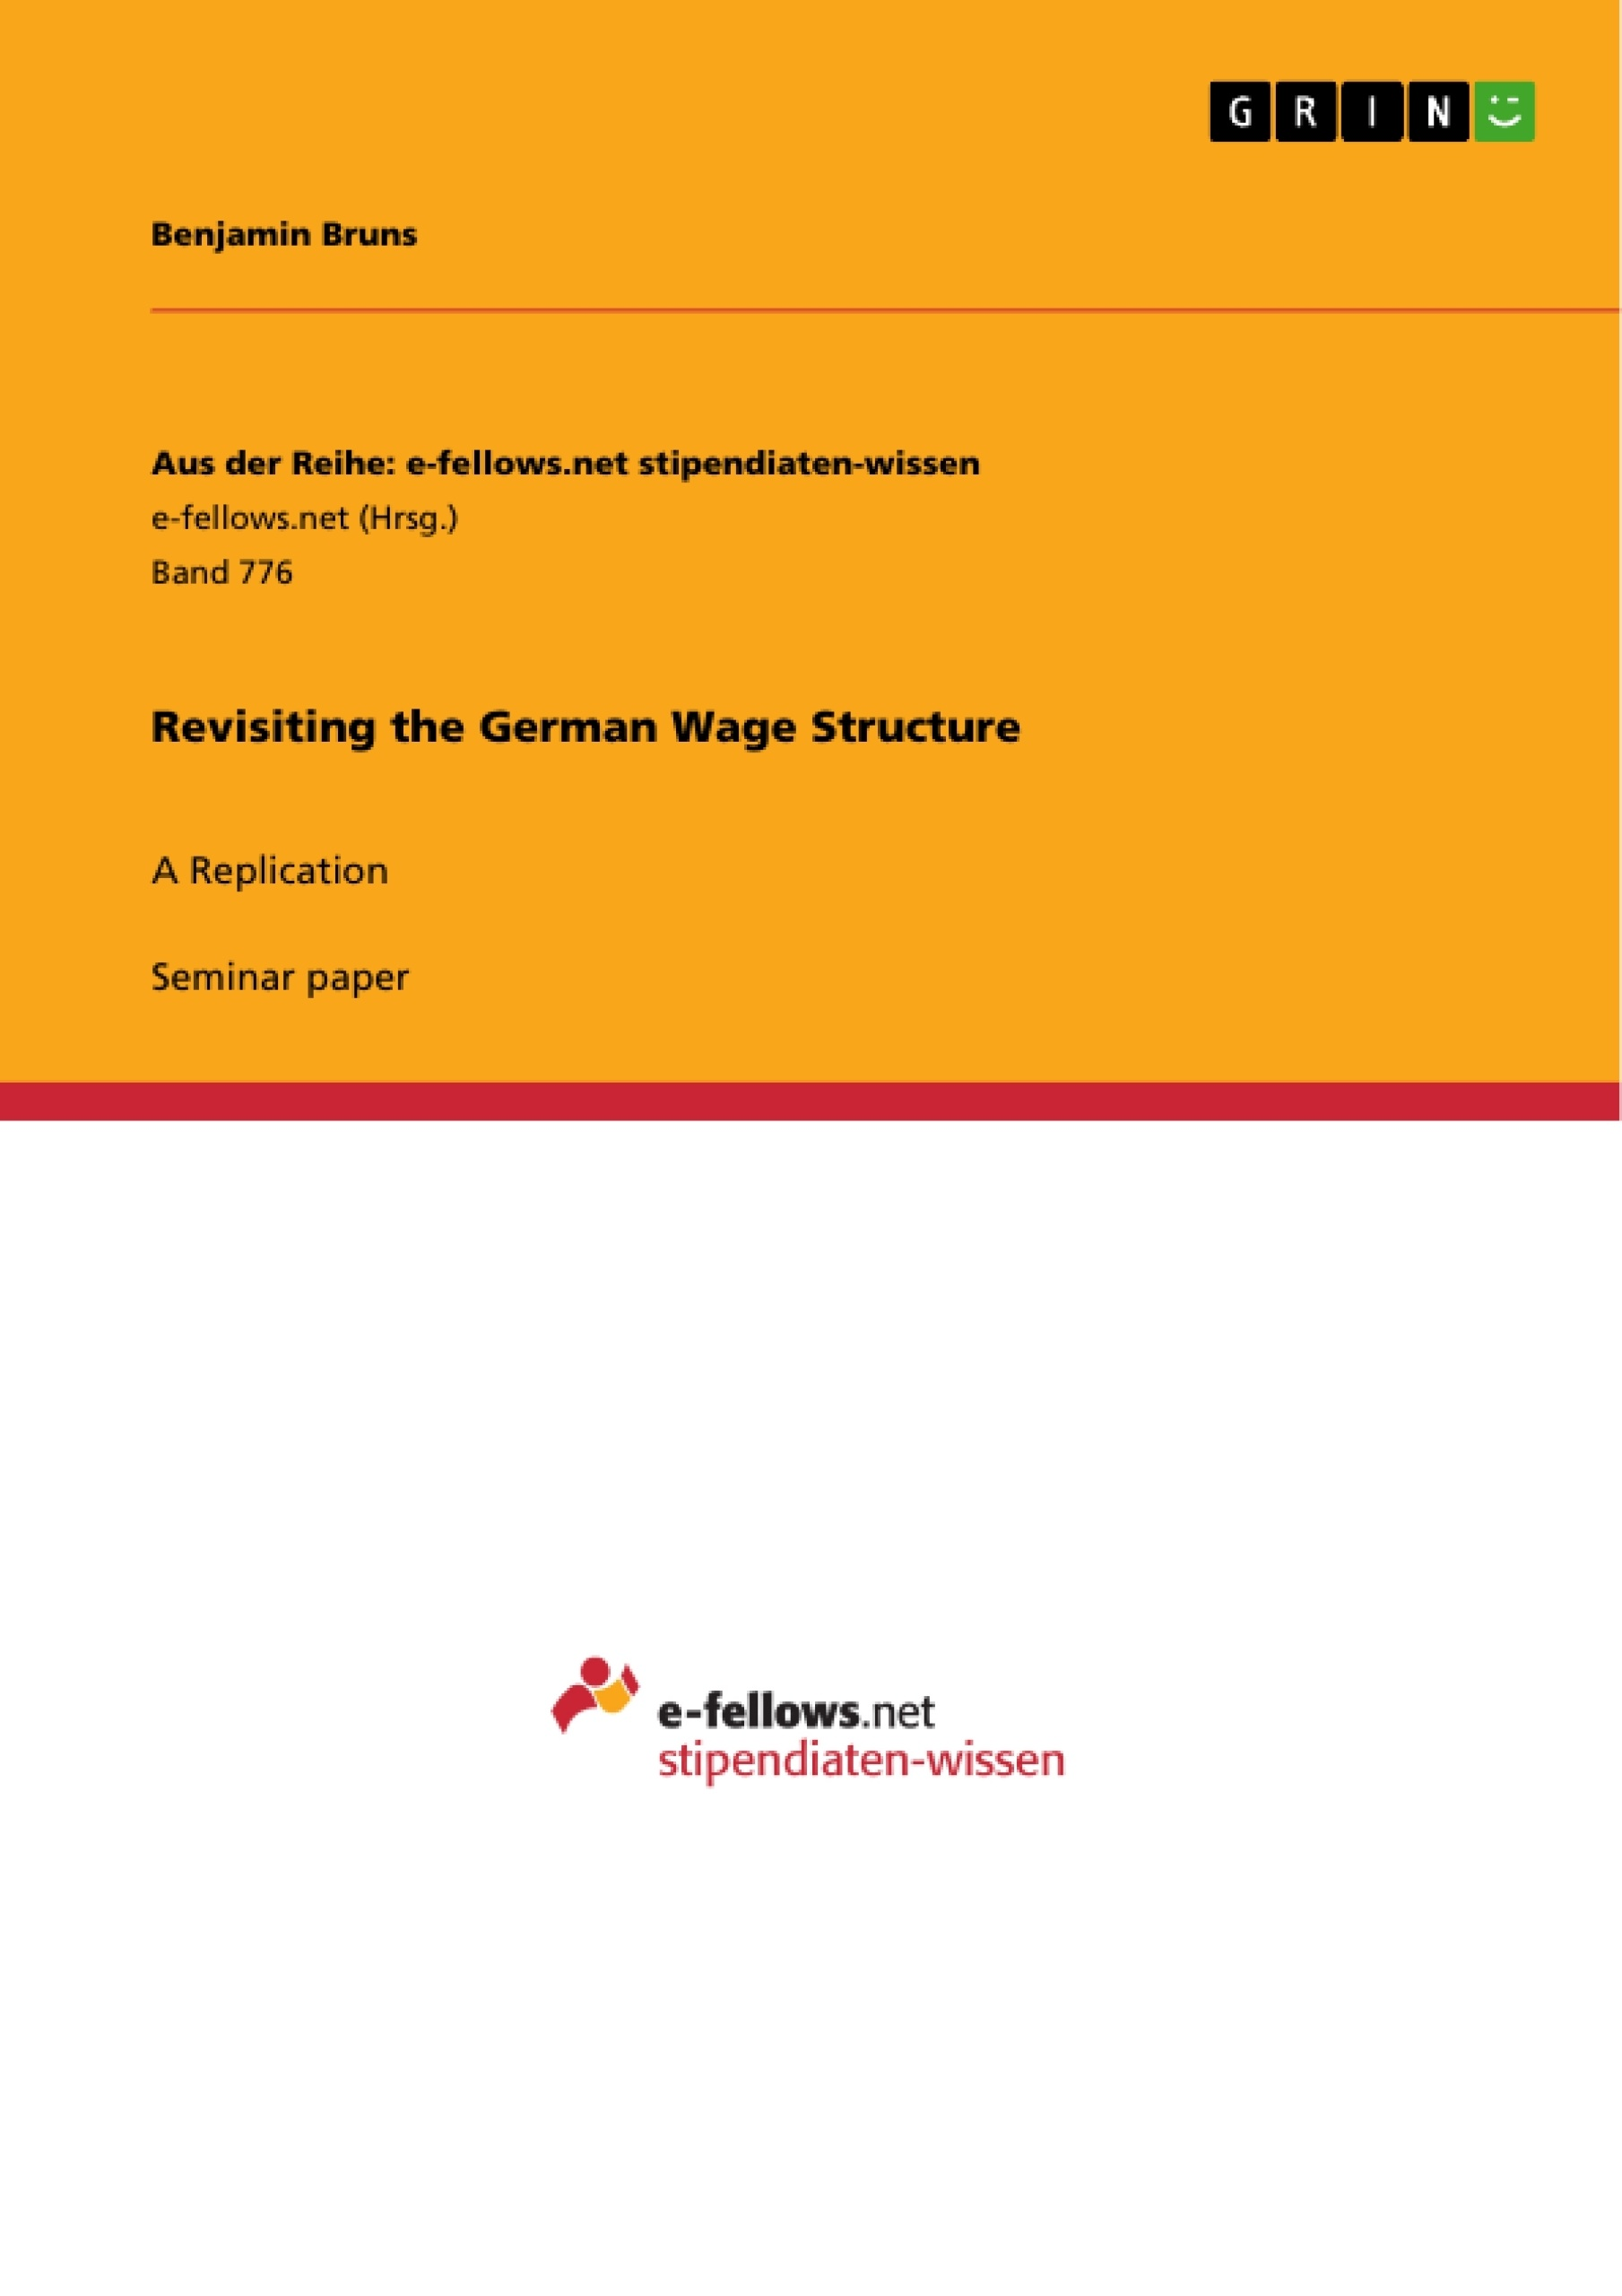 Title: Revisiting the German Wage Structure